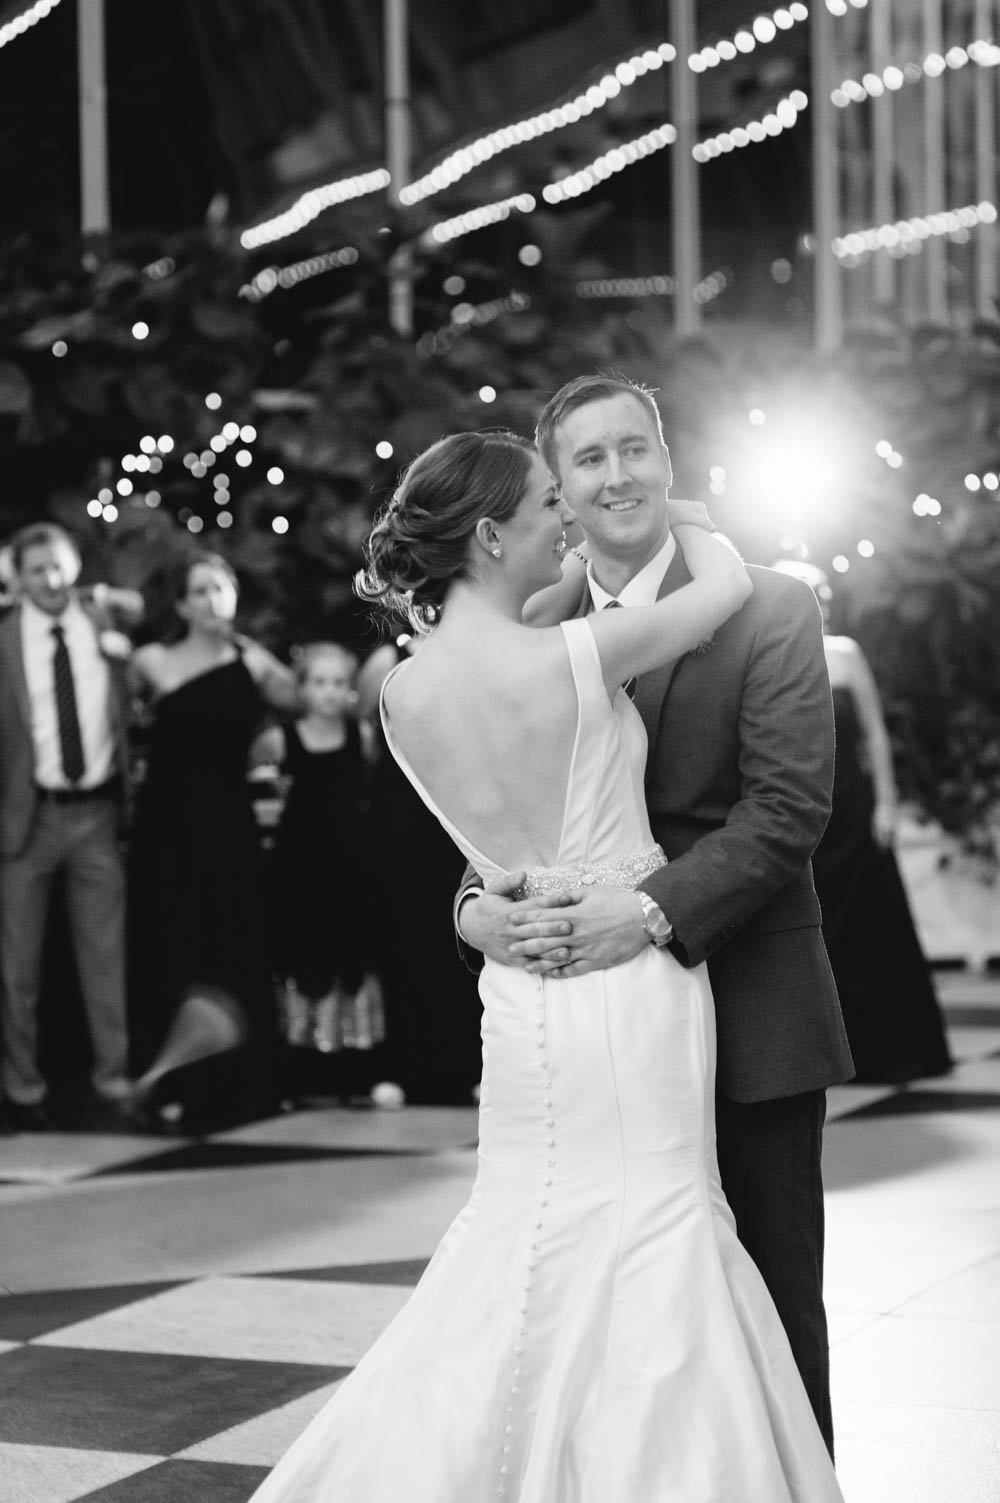 wintergarden-wedding-pittsburgh-118.jpg